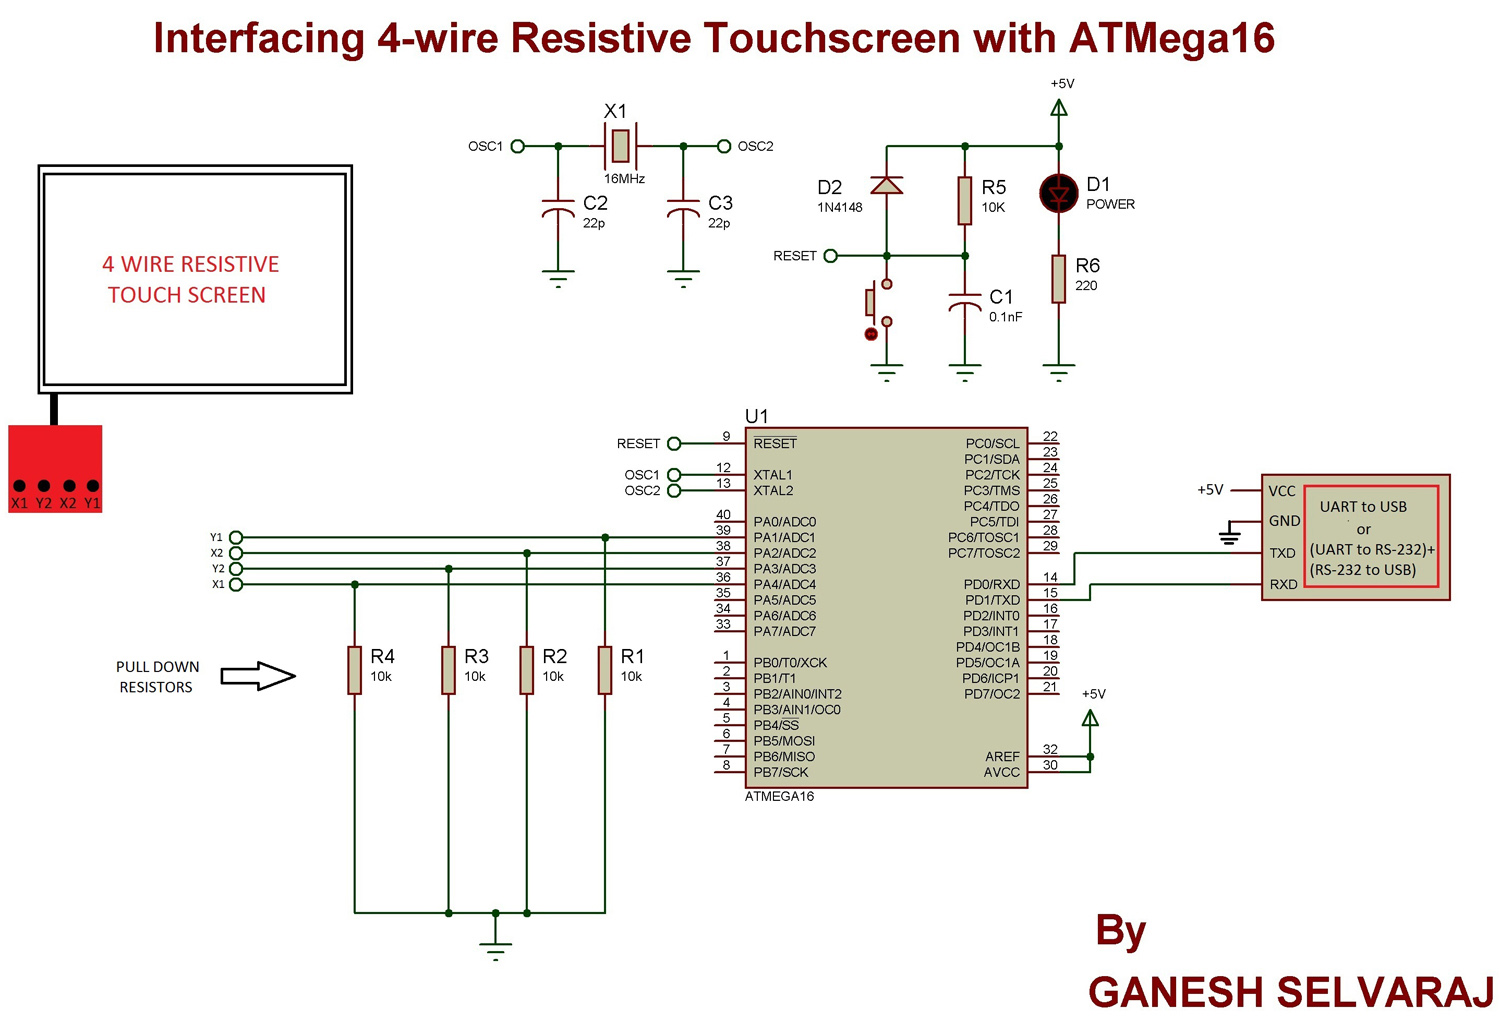 Digital Thermometer Circuit Diagram Wiring Diagrams For Dummies Interfacing 4 Wire Resistive Touchscreen With Atmega16 Schematic Using Microcontroller